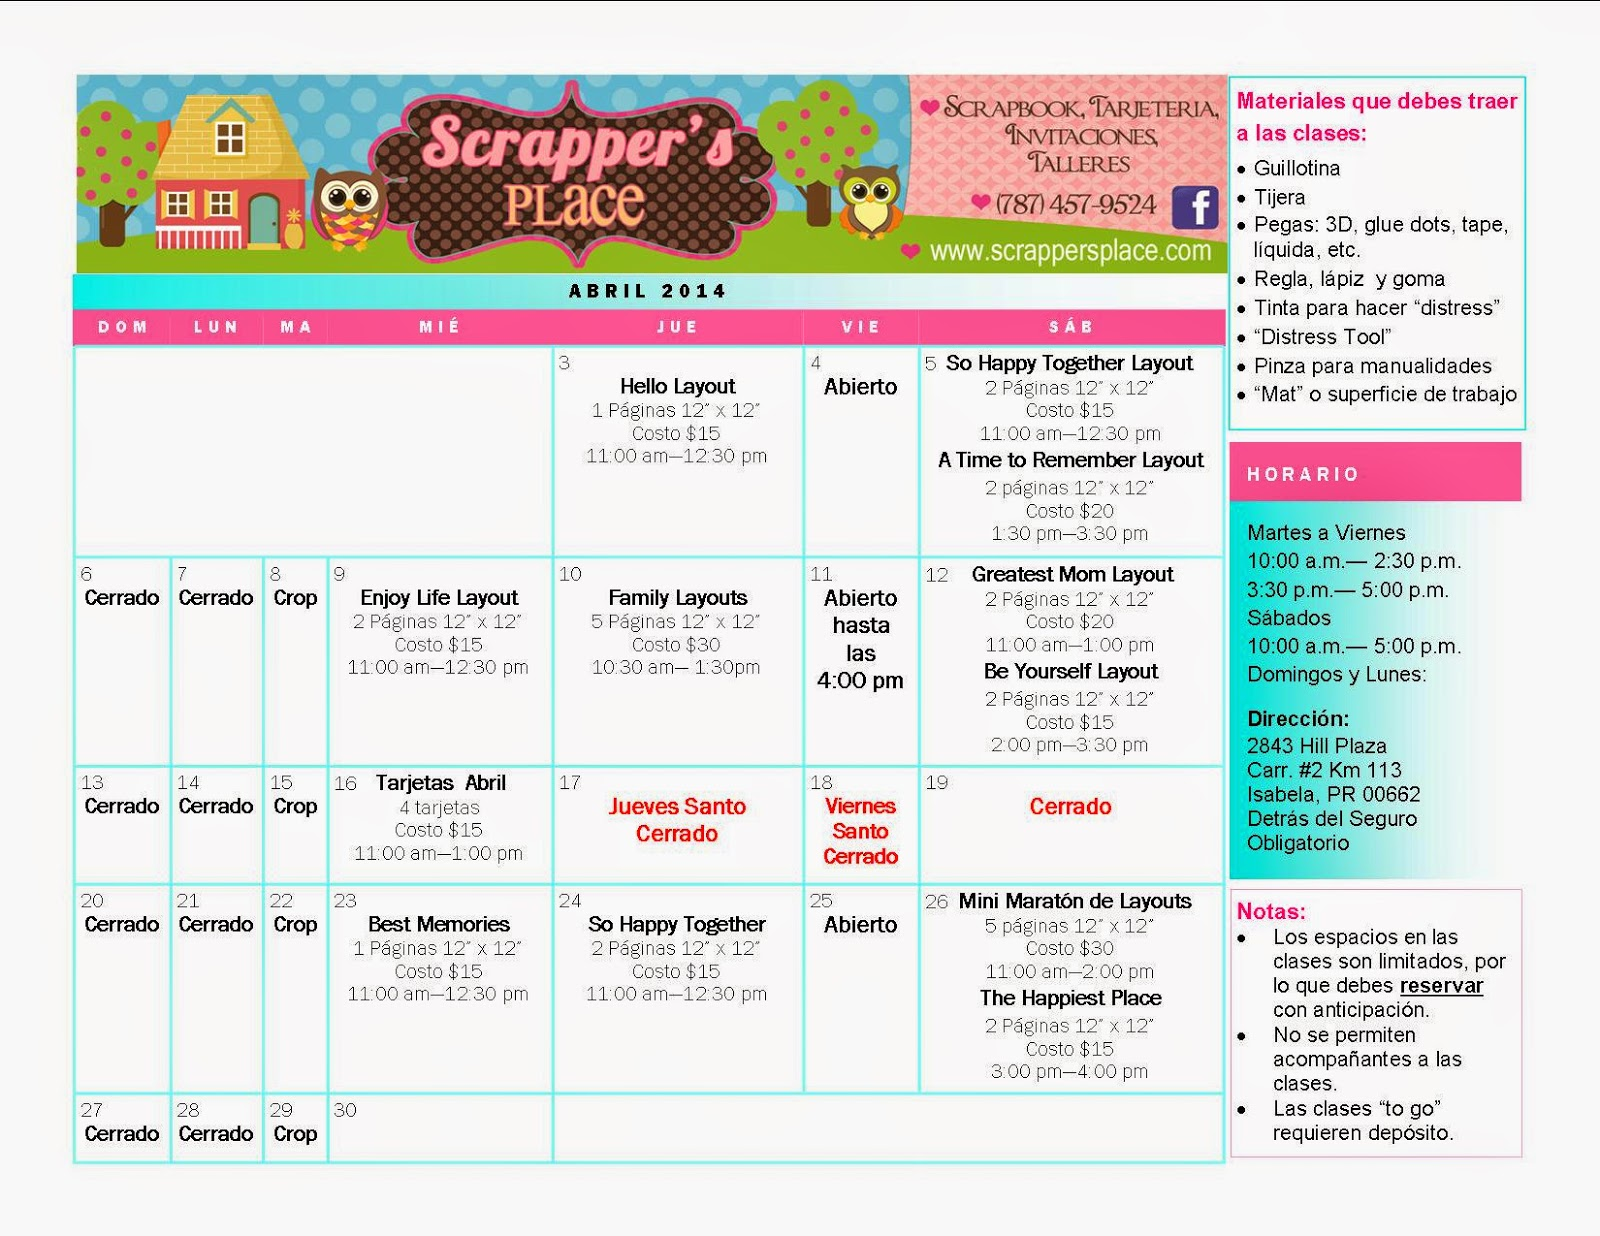 http://scrappersplace.com/Calendario/2014Abril.jpg